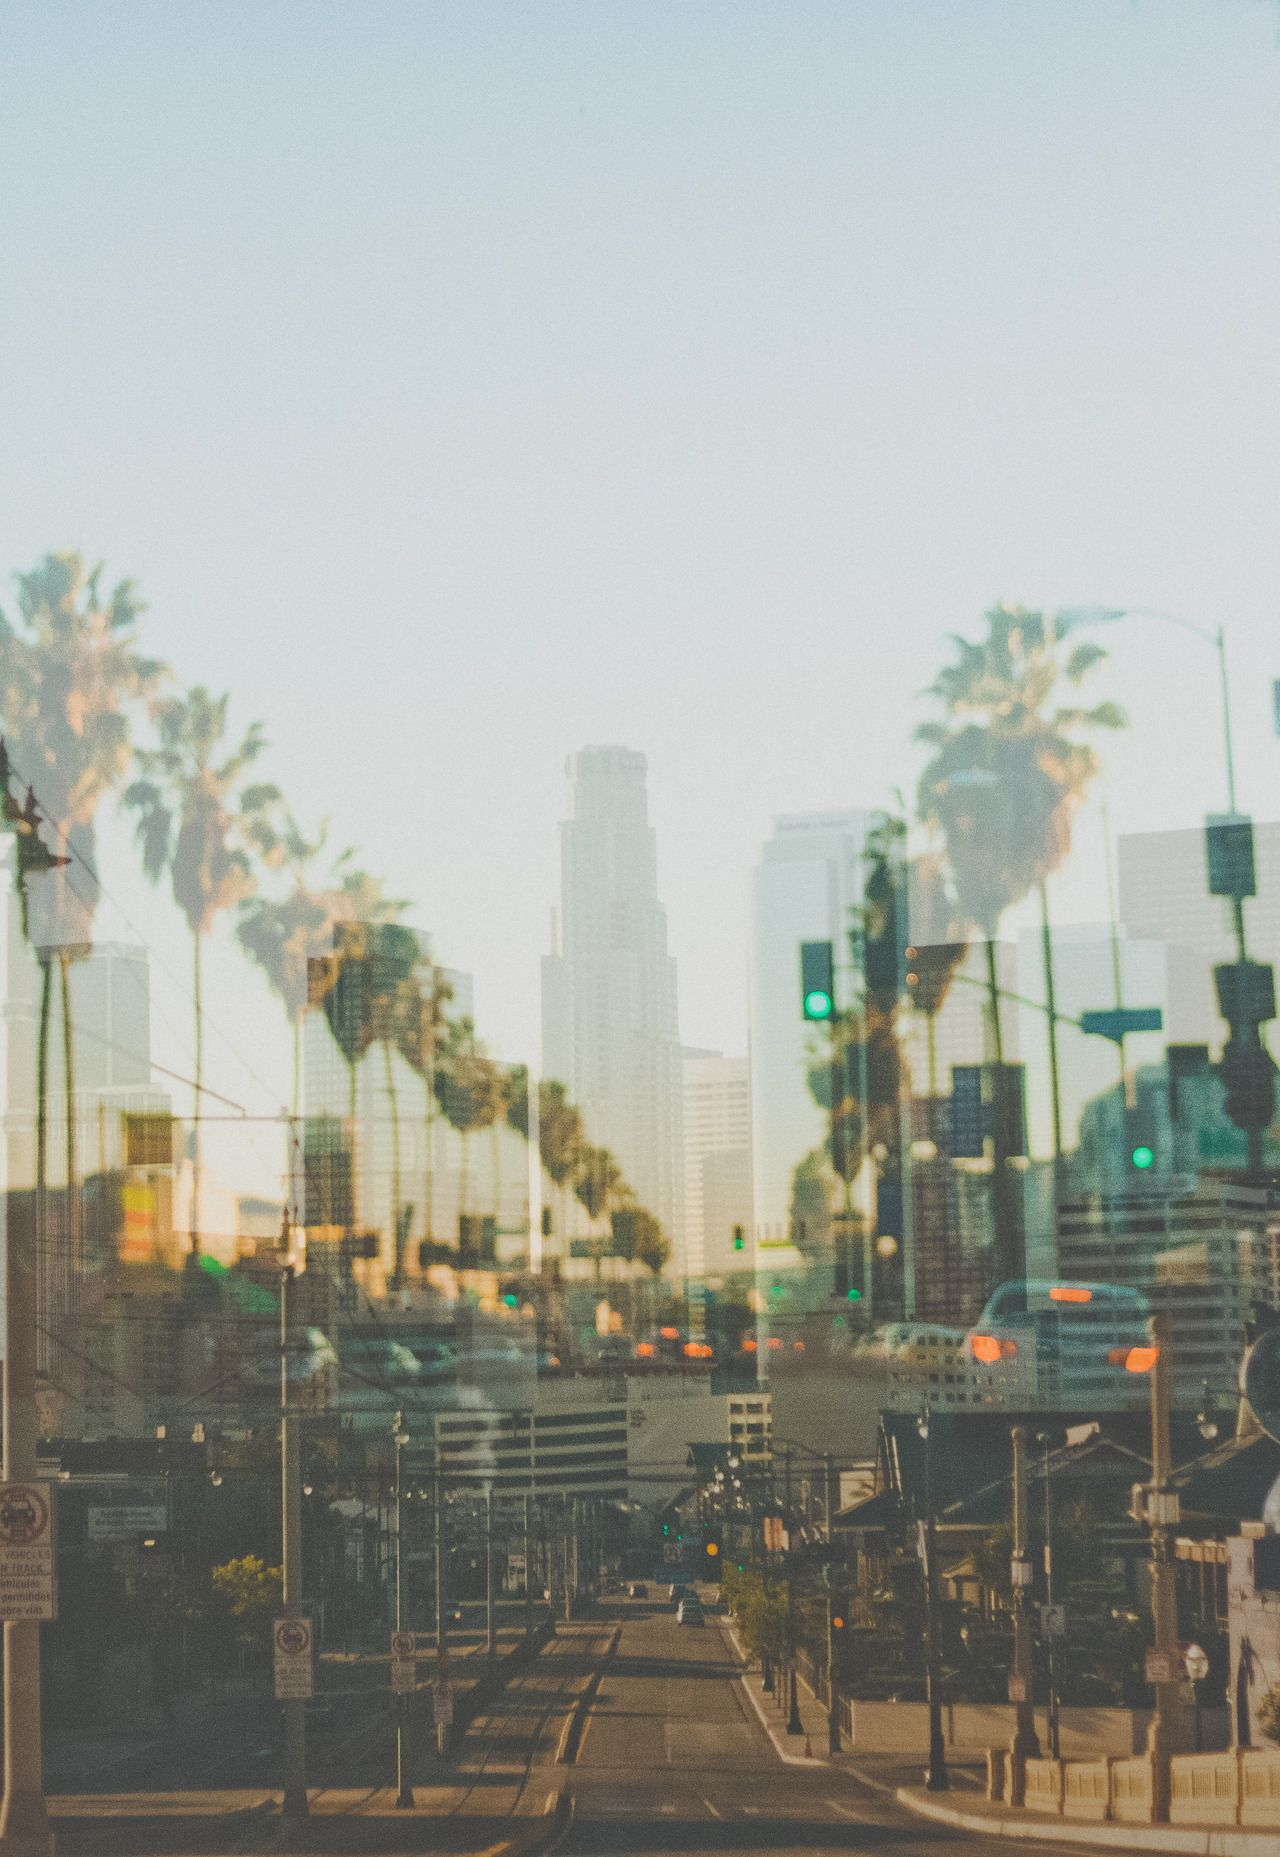 La Everyday With Images City Of Angels California Dreamin Scenery